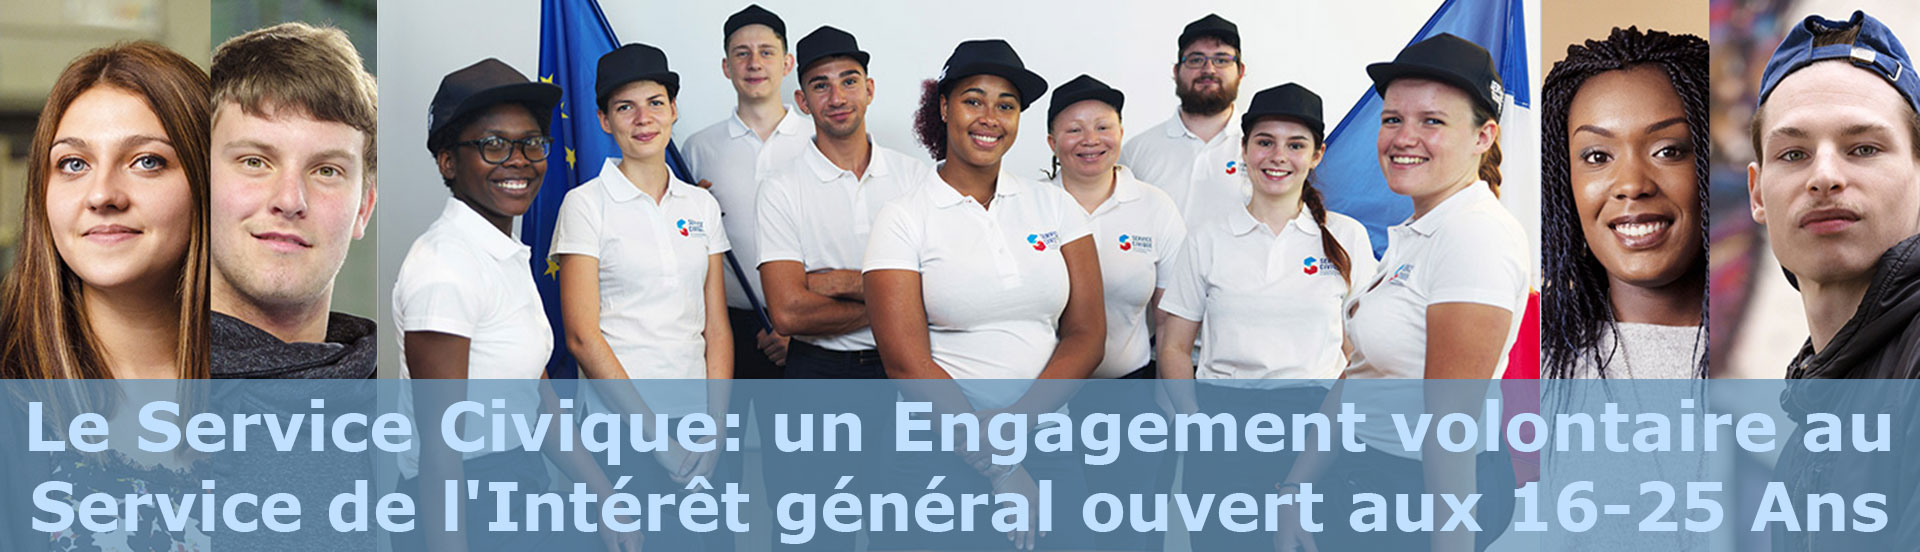 Info DDFiP: Candidatures - Recrutement de Volontaires du Service Civique